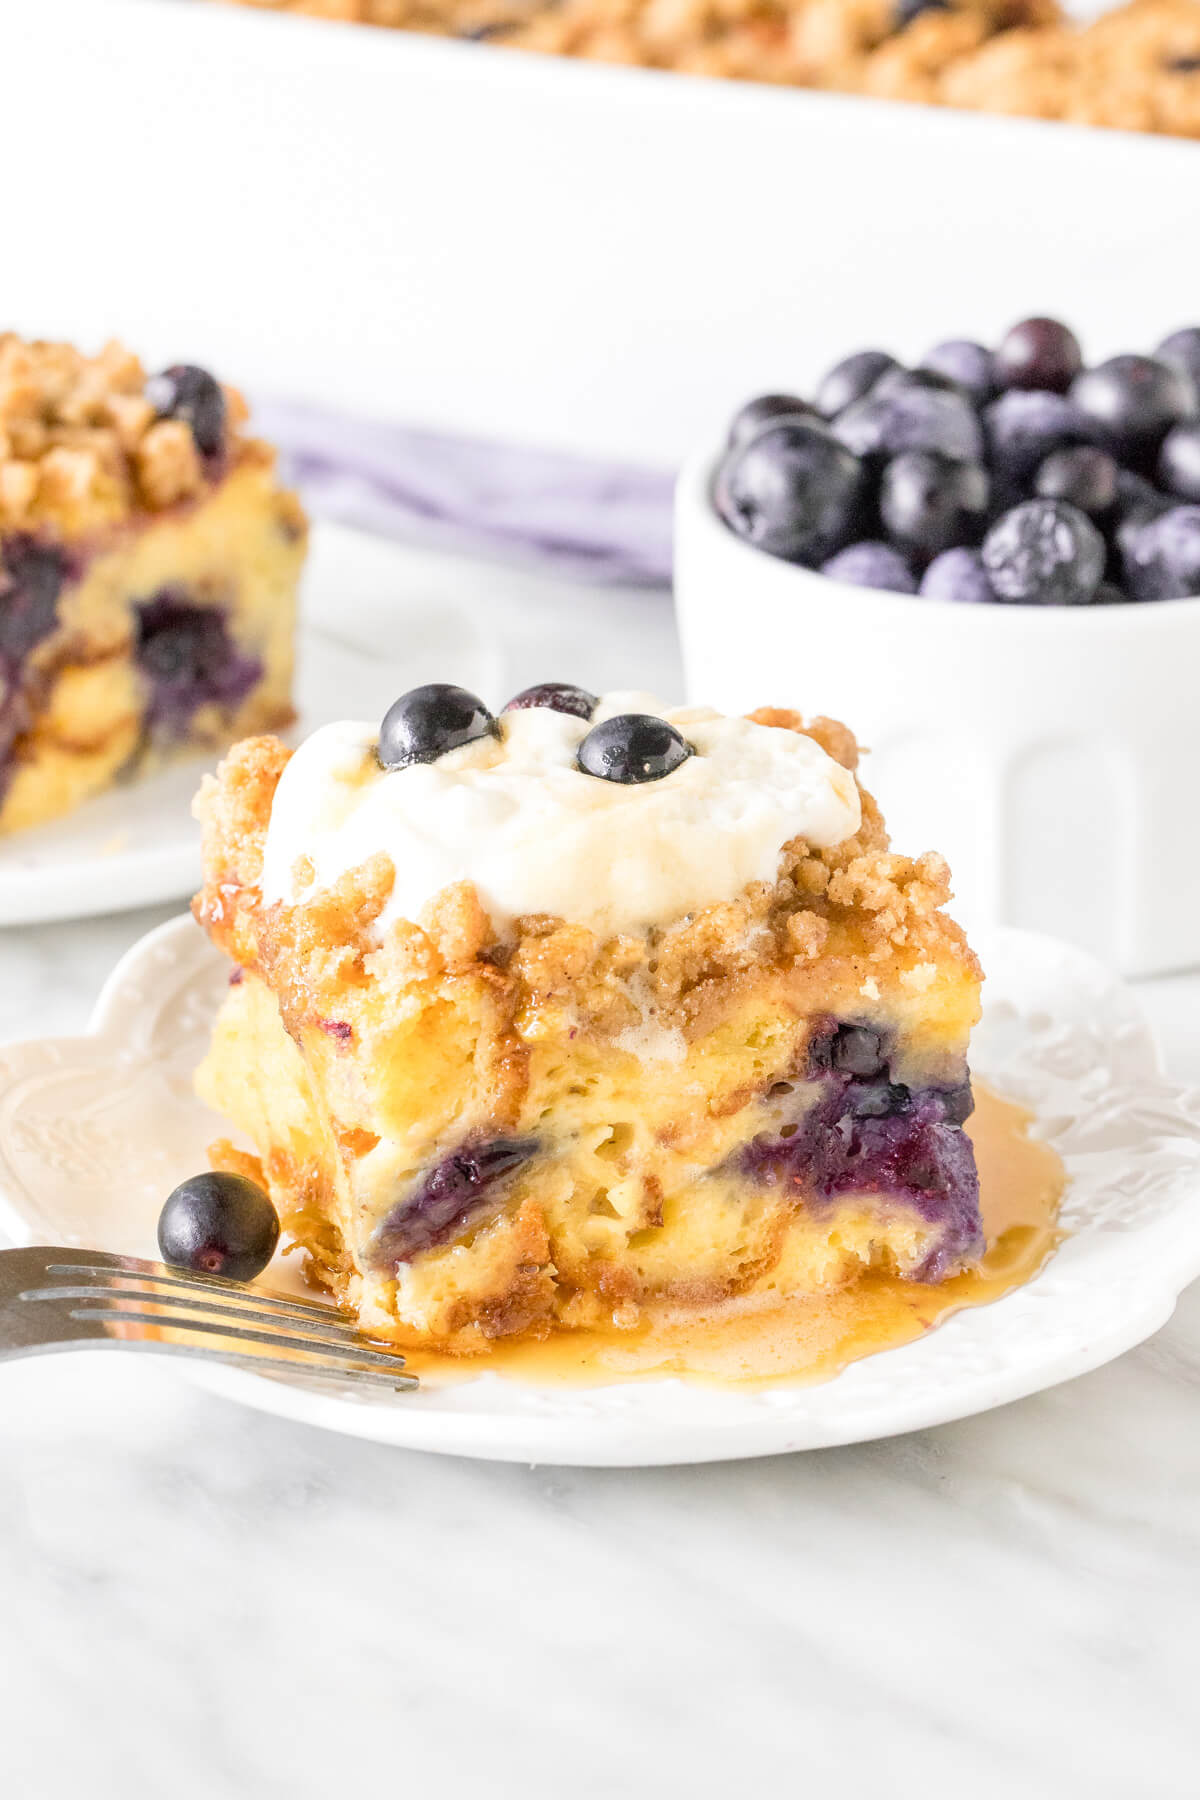 Slice of blueberry french toast casserole with whipped cream on top.